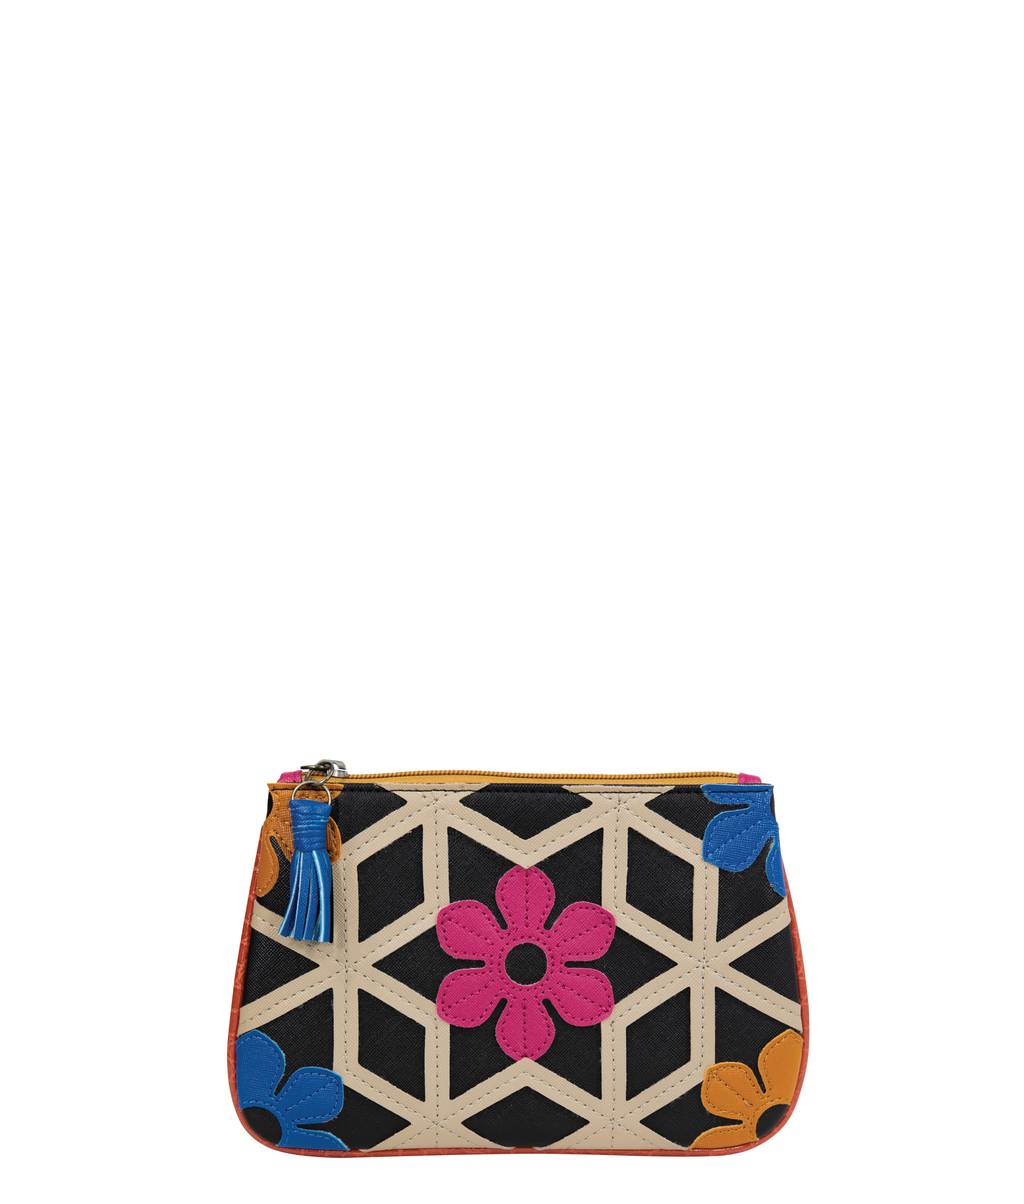 GINA Accessories Purse - Persia